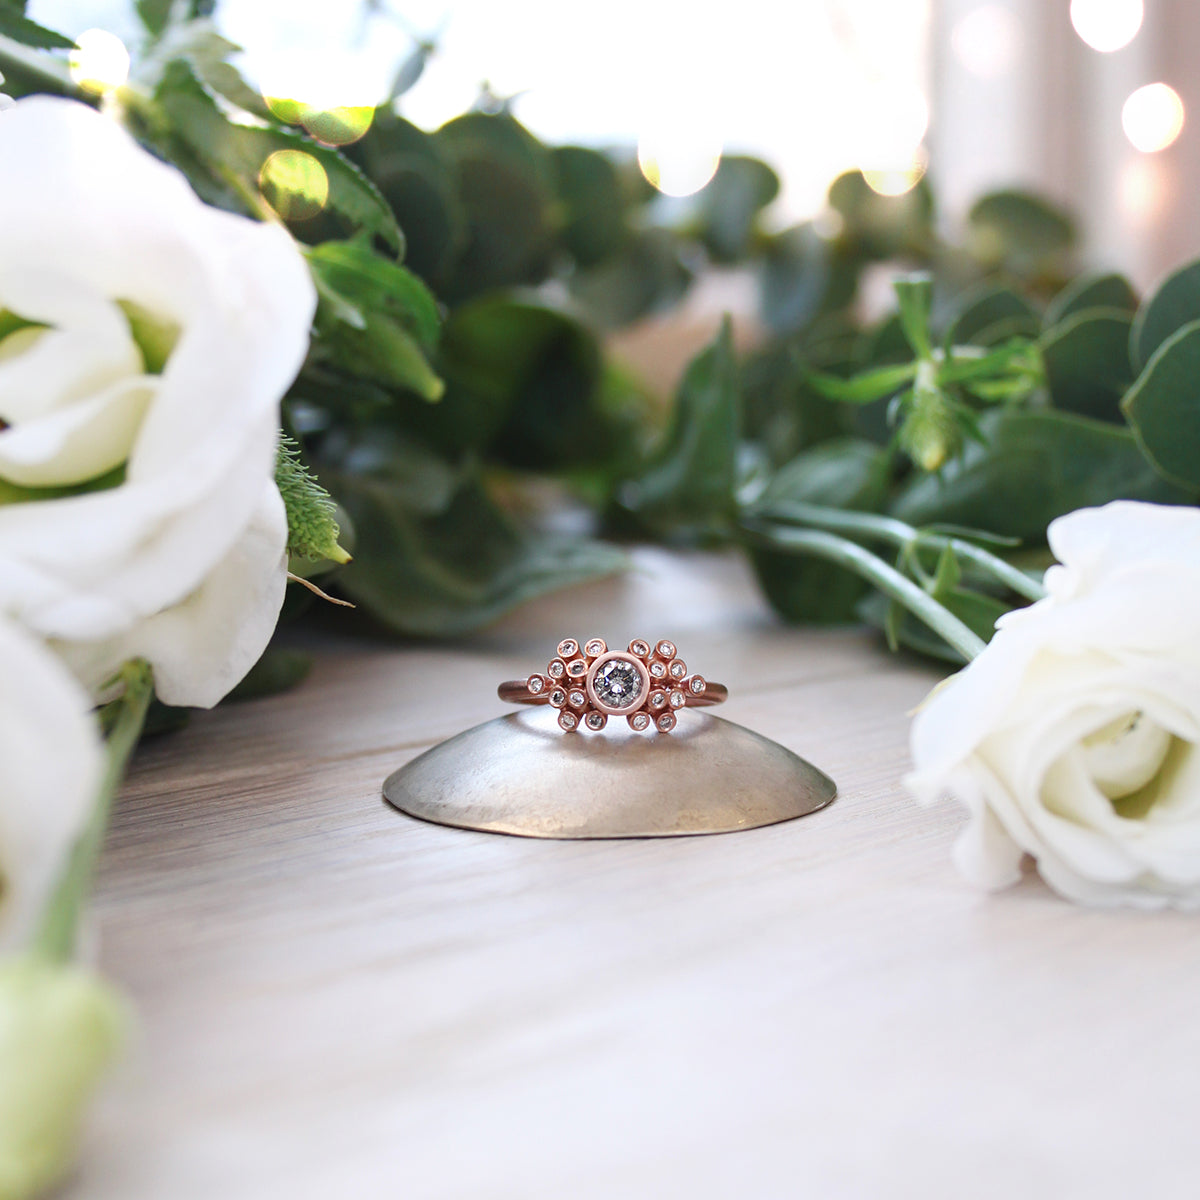 30pt Salt and Pepper Diamond & 9ct Red Gold Cluster Ring